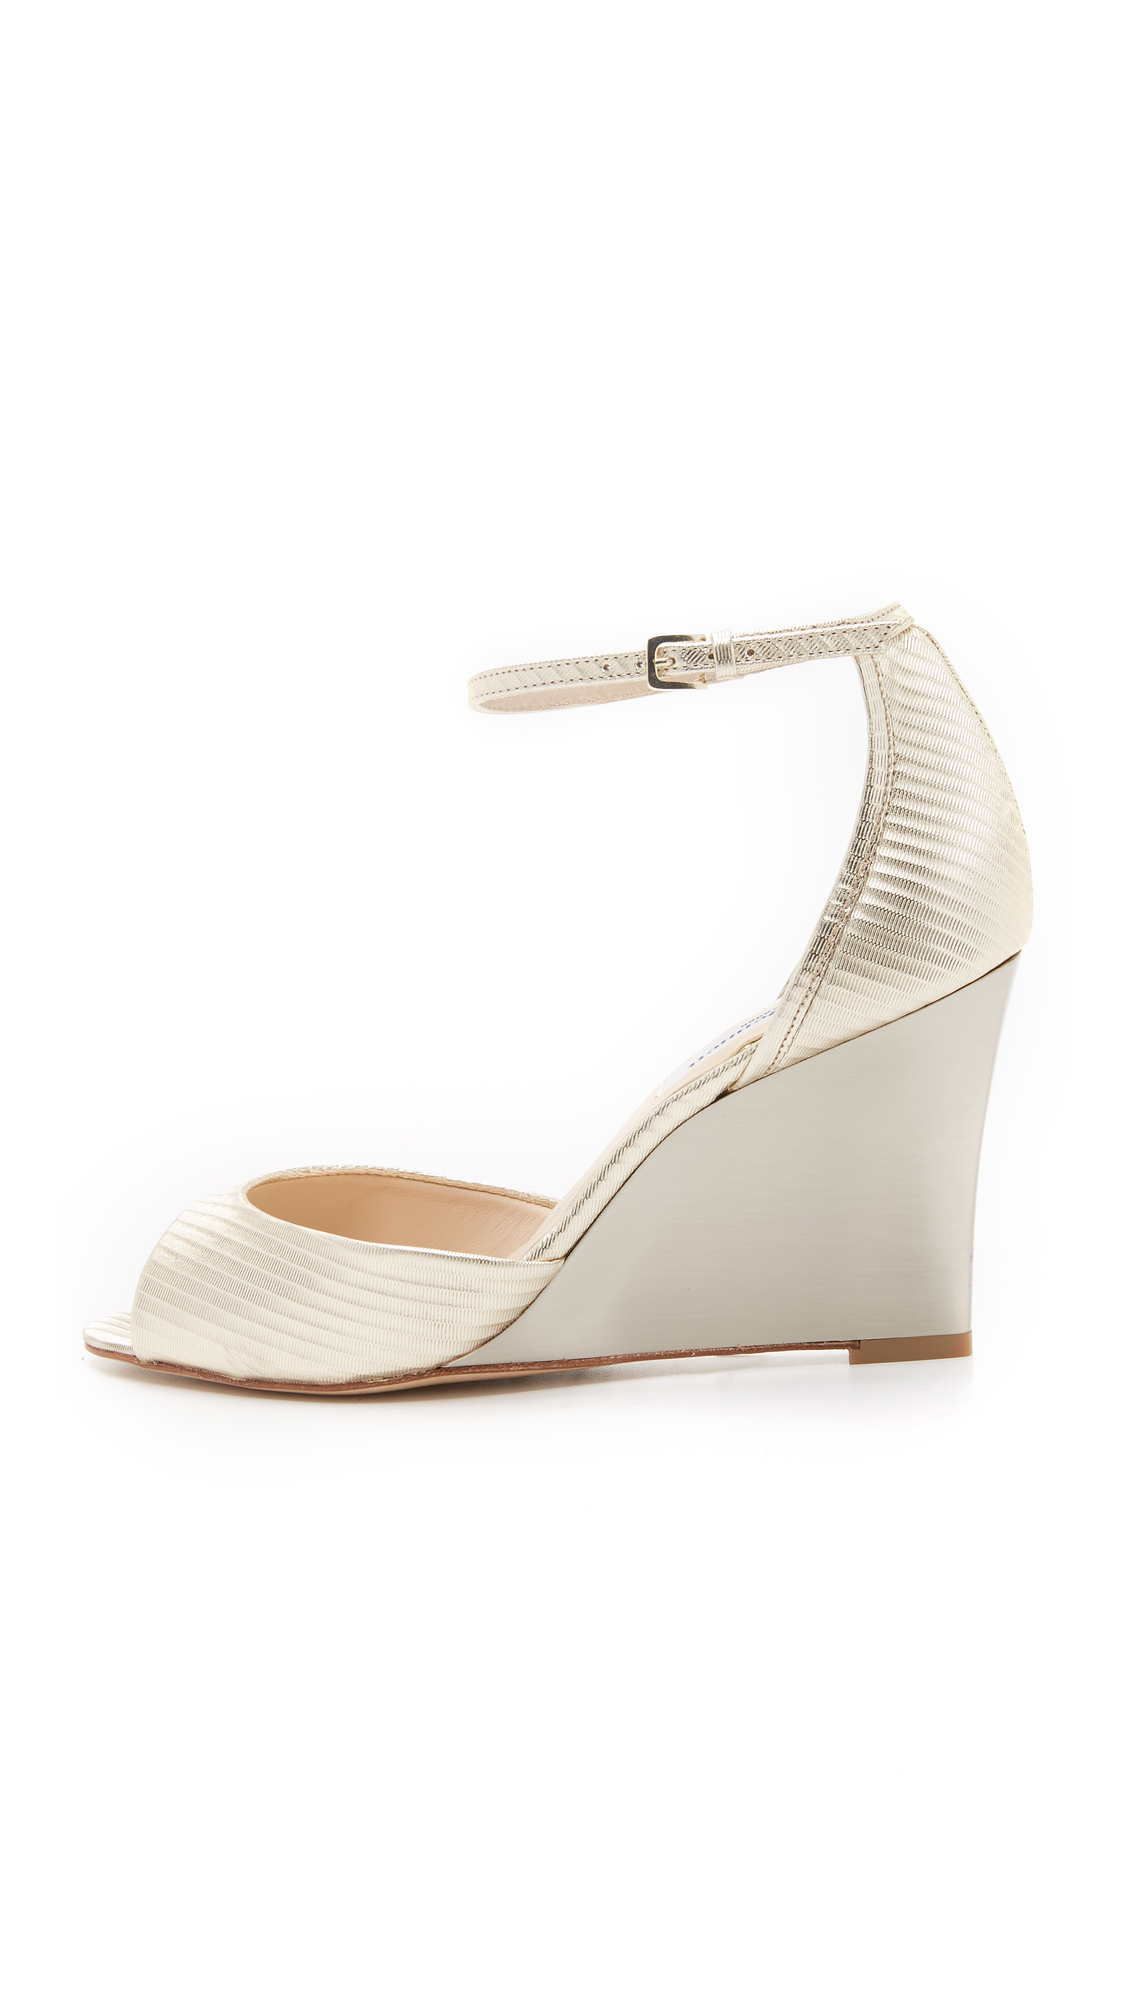 L.K. Bennett Metallic Knot Wedges cheap find great free shipping limited edition clearance original MaI5sn3so